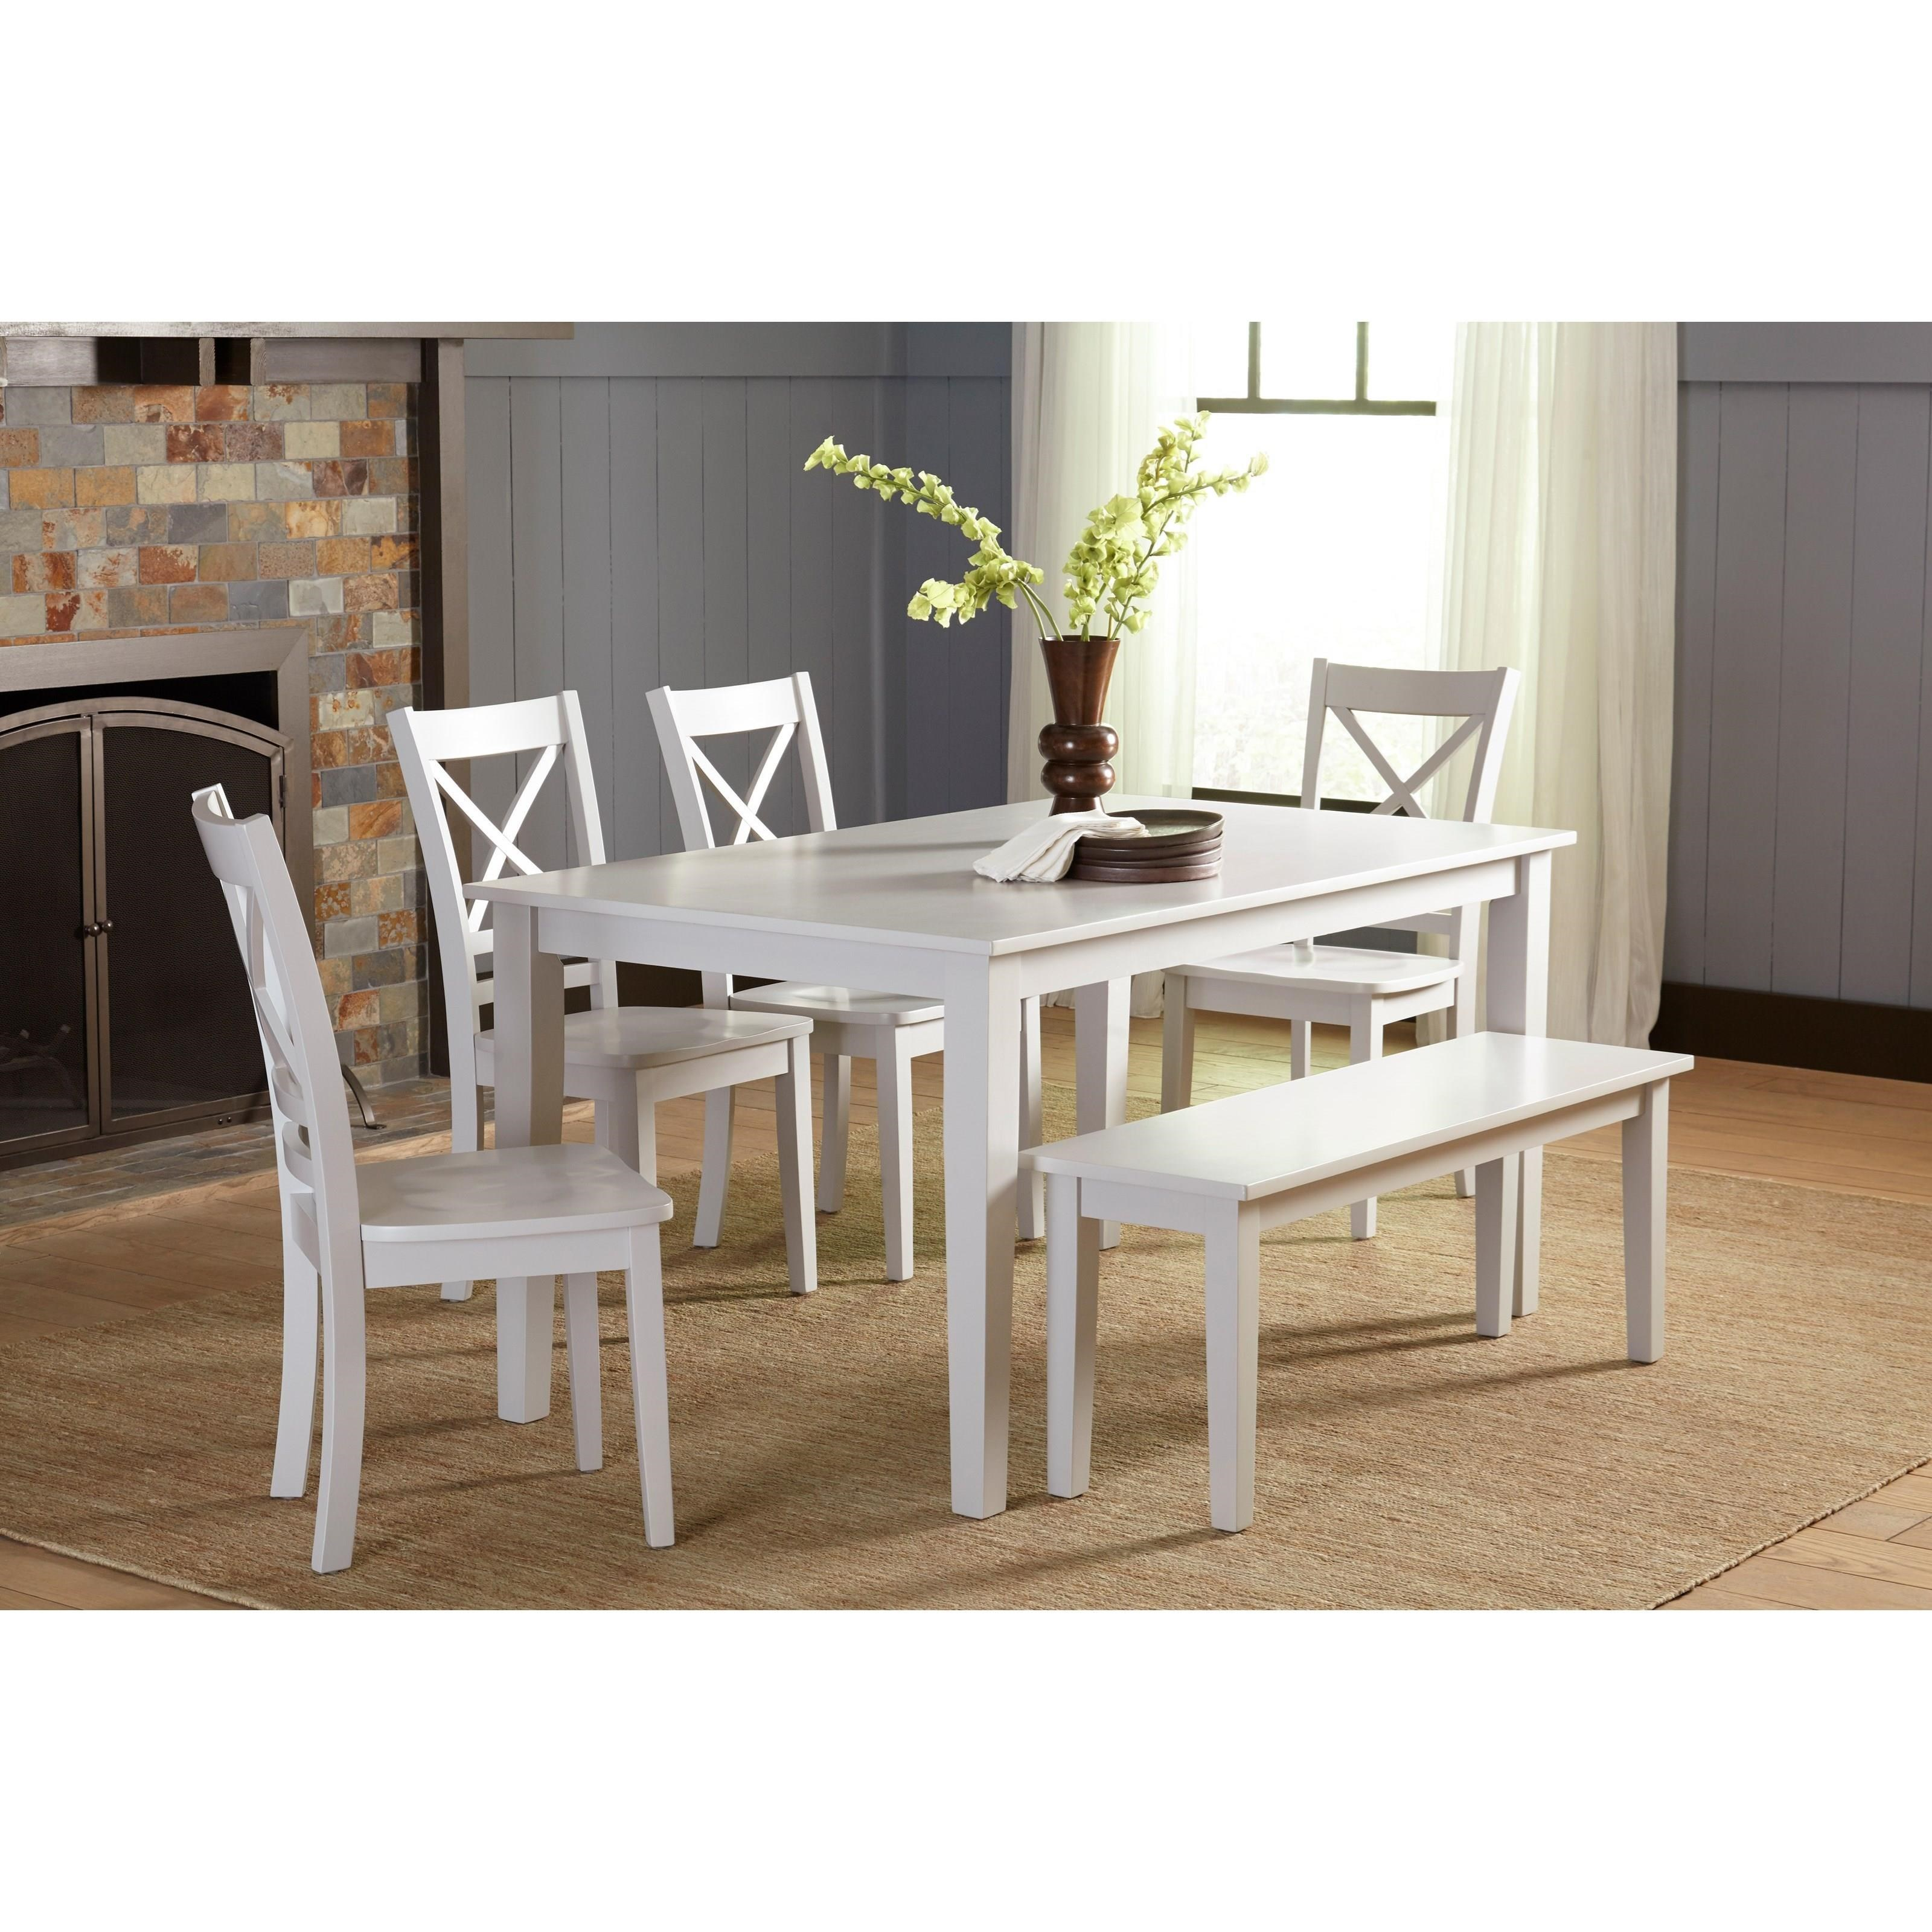 Morris Home Furnishings Cale Cale 5 Piece Dining Set   Item Number:  688450564